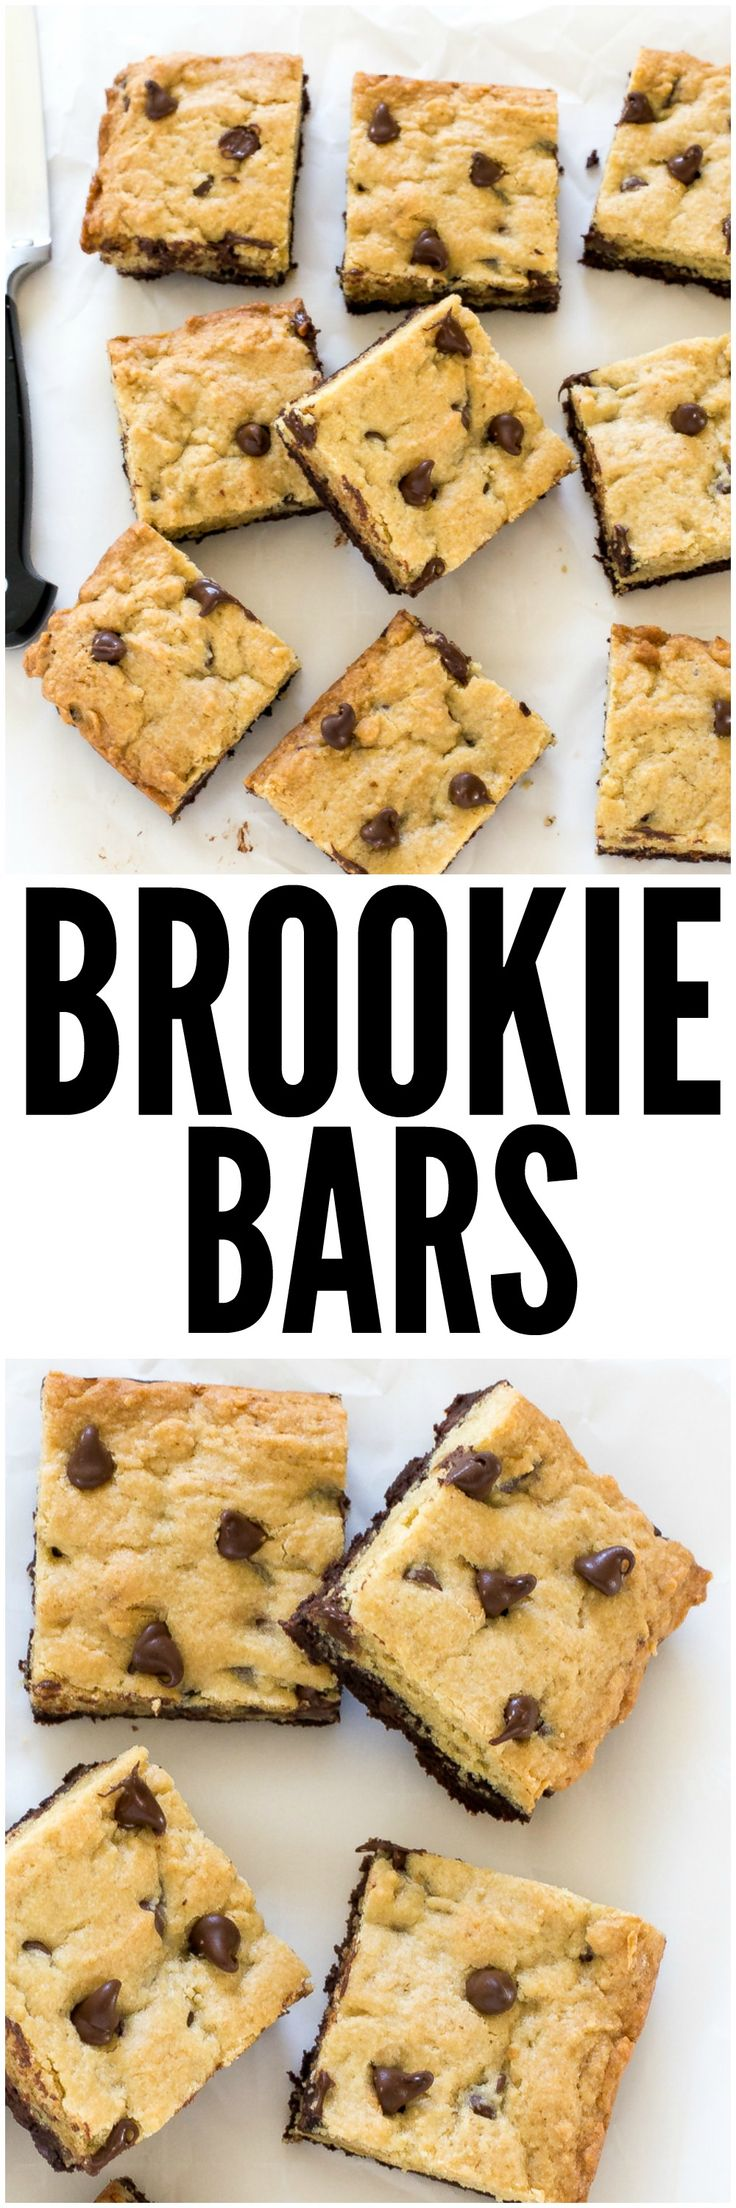 Amazing Brookie Bars! A layer of chewy chocolate chip cookie and a layer of fudgey brownie. The best of both worlds!